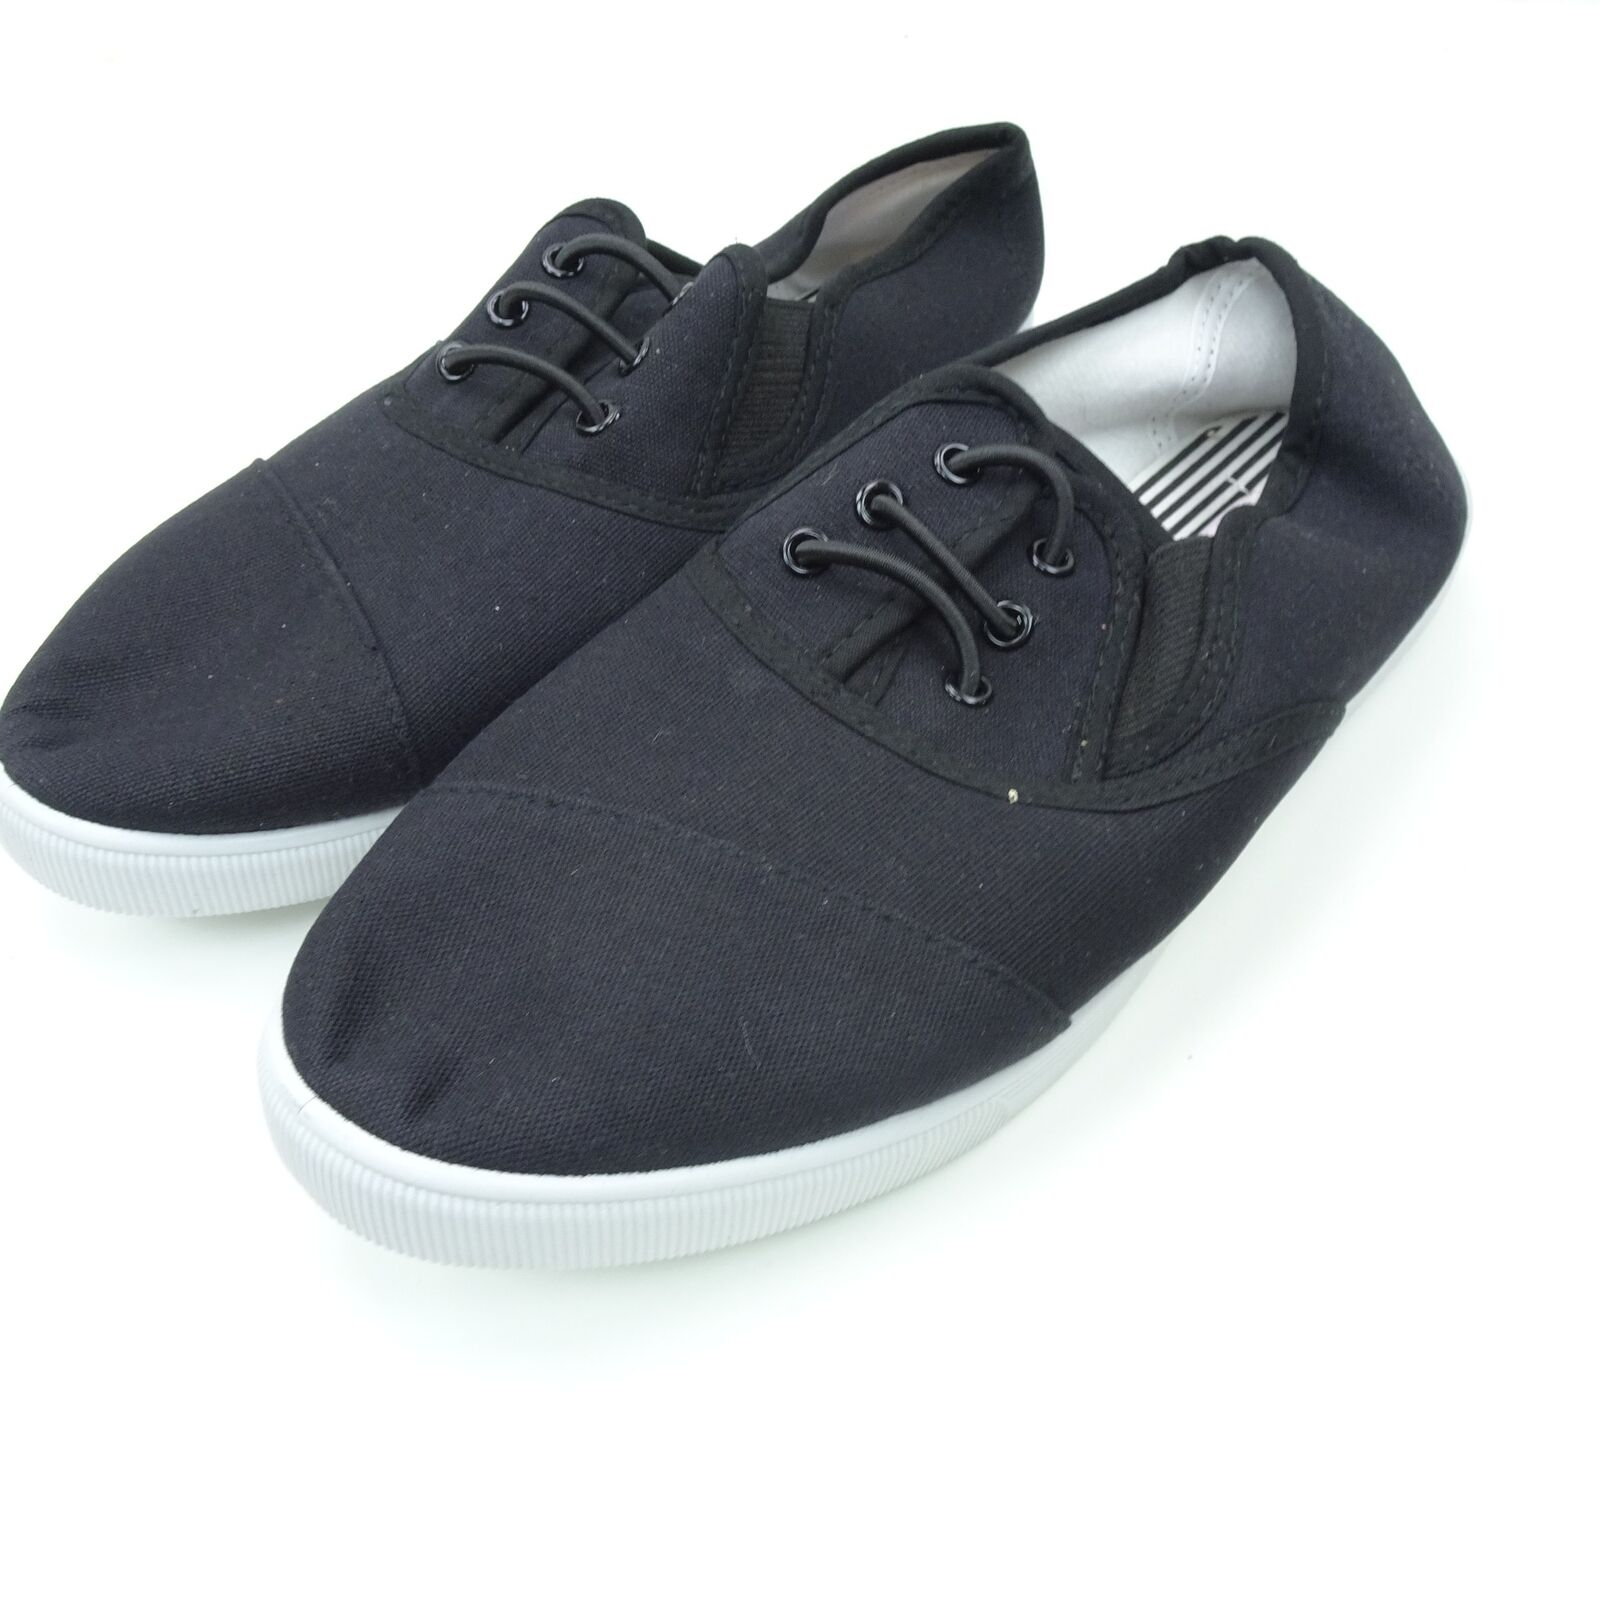 Women's American Sweetheart Comfortable and Casual Blue Suede Shoe Size 11W